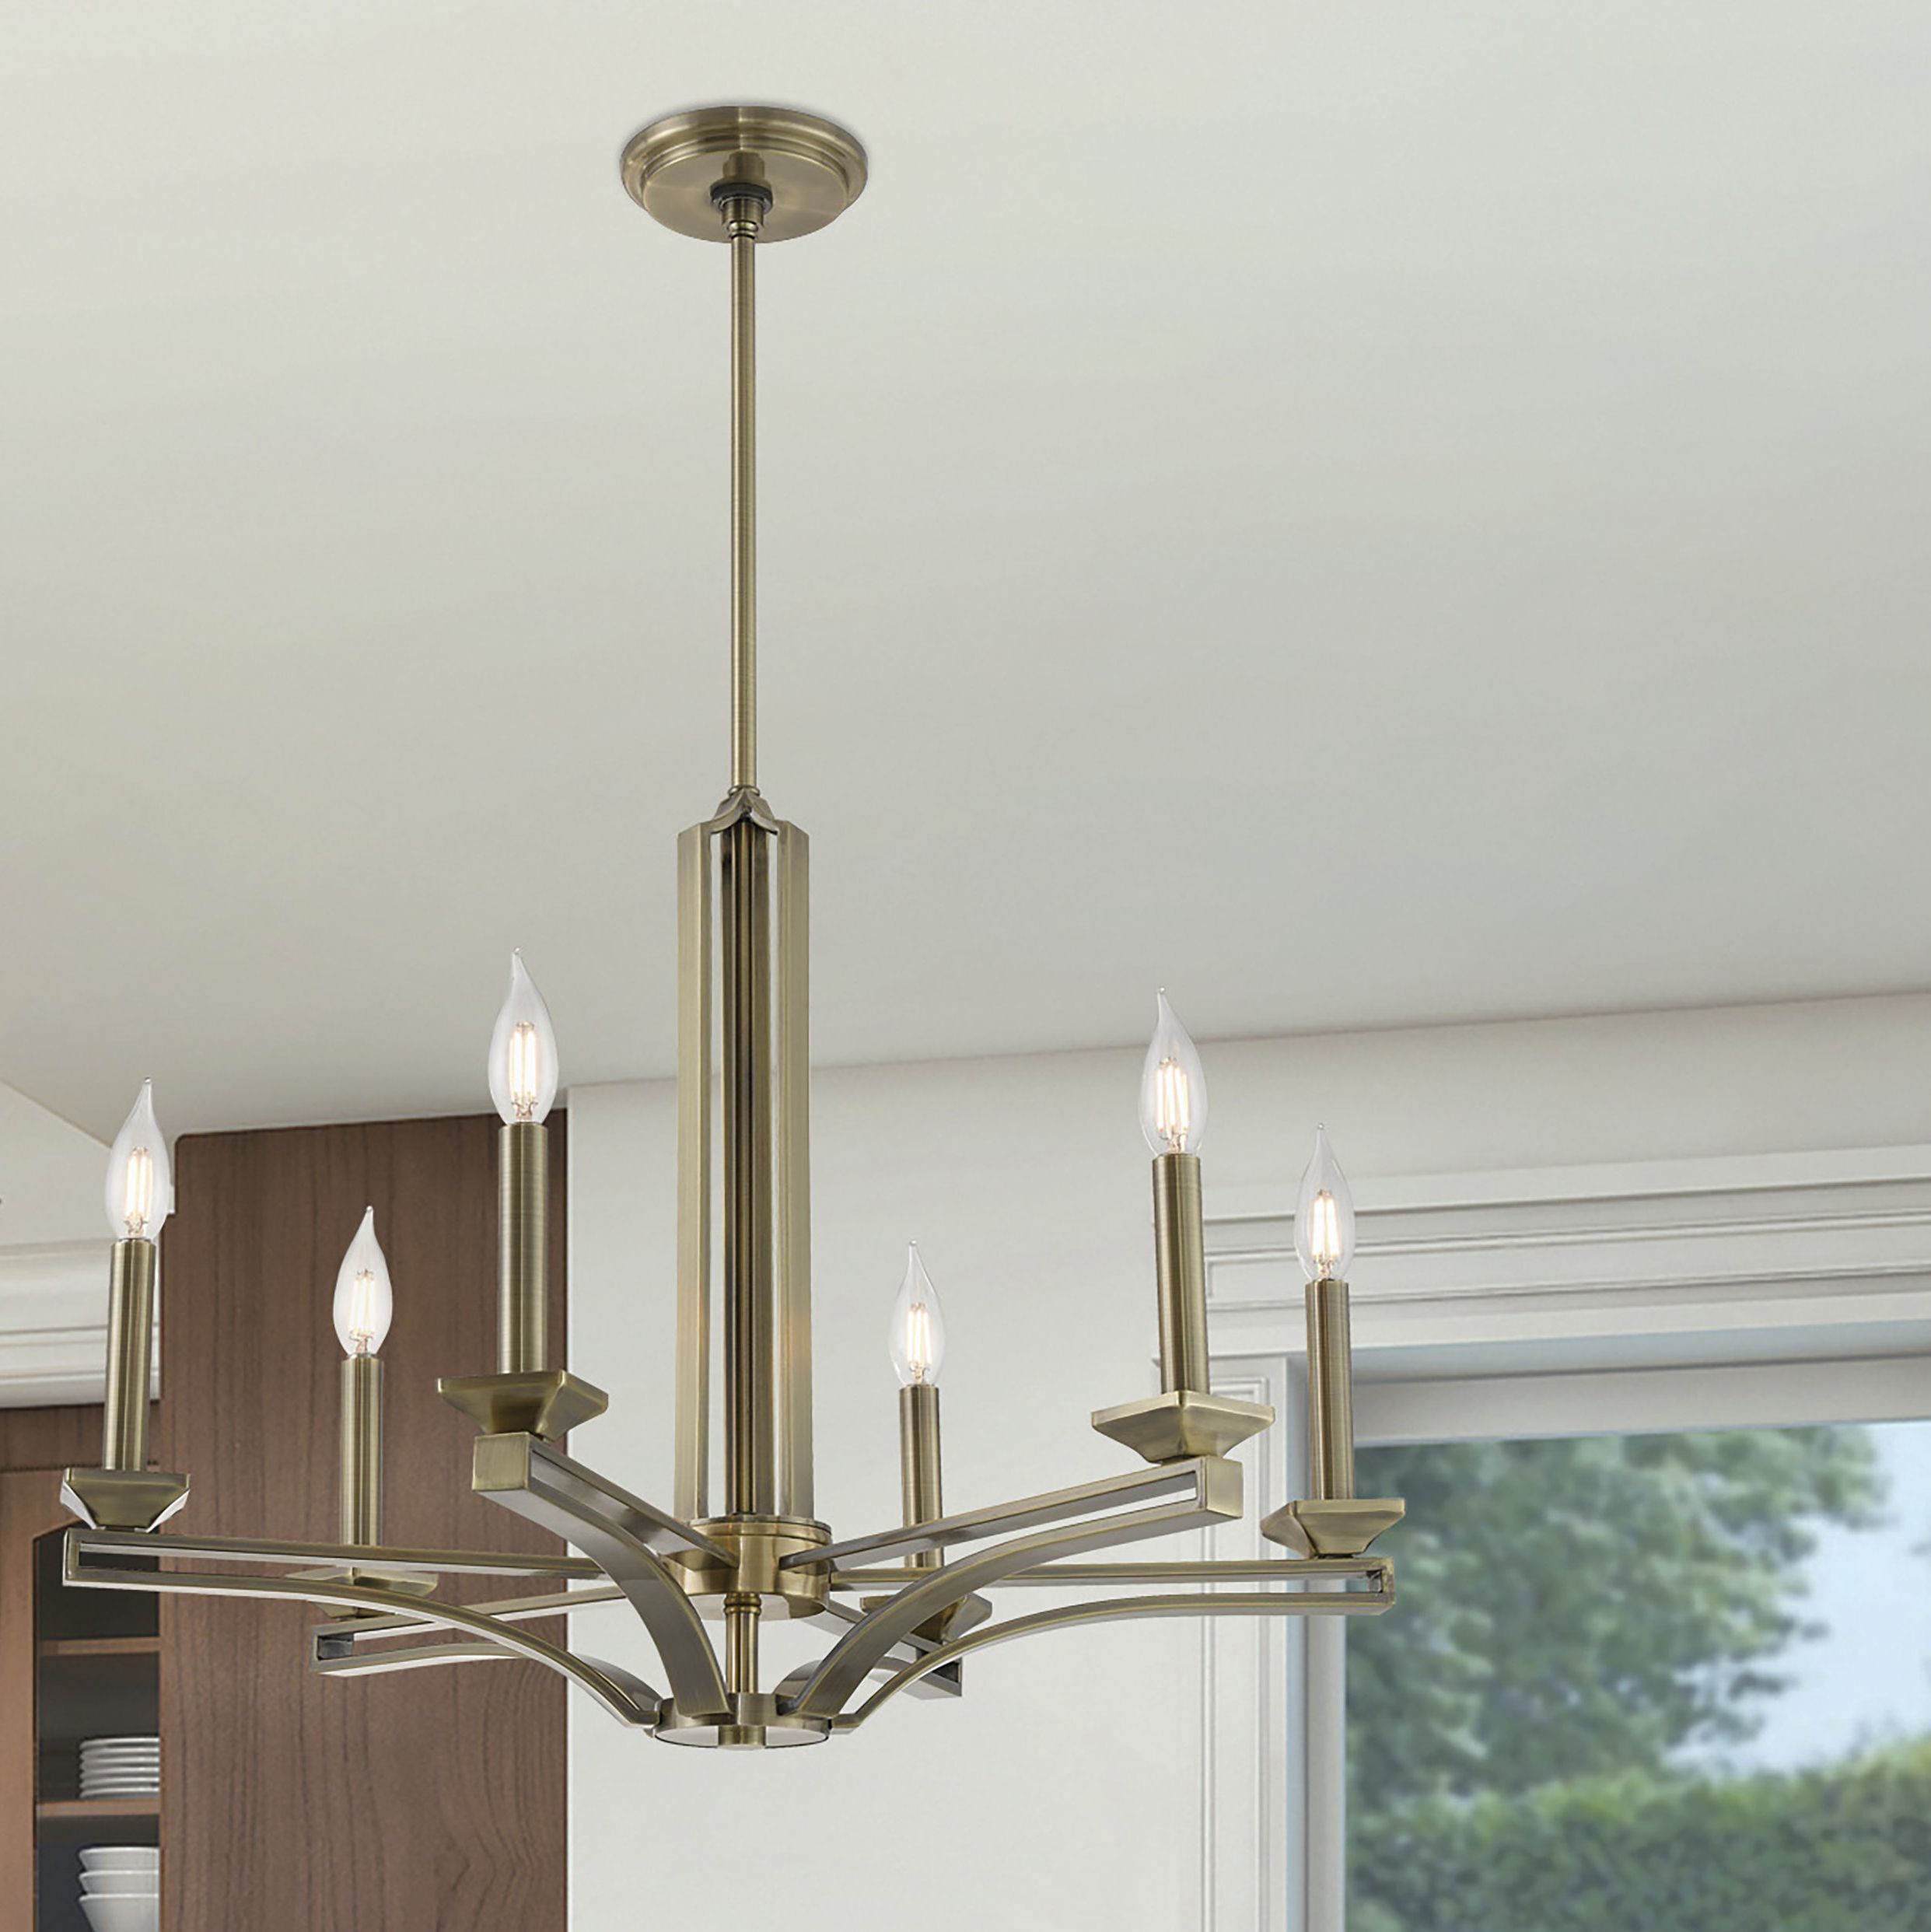 Dedham 6 Light Candle Style Chandelier Throughout Well Known Hesse 5 Light Candle Style Chandeliers (View 15 of 25)